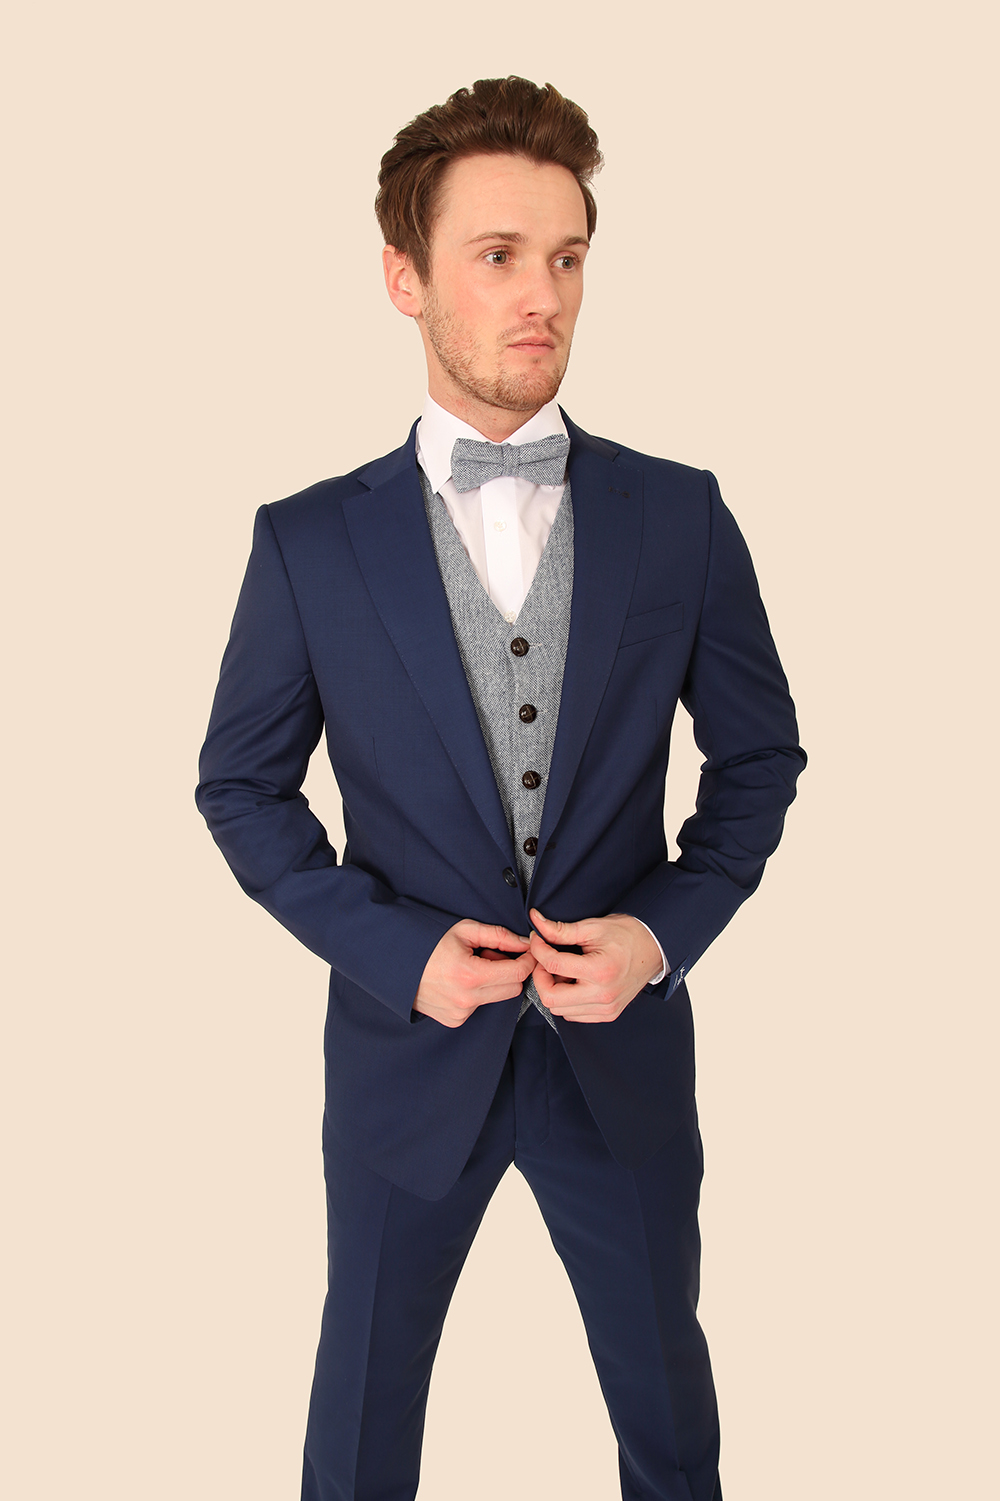 Buy suits in black, blue, grey and more from Charles Tyrwhitt of Jermyn Street, London. Choose from a range of cuts and styles to find your perfect suit.